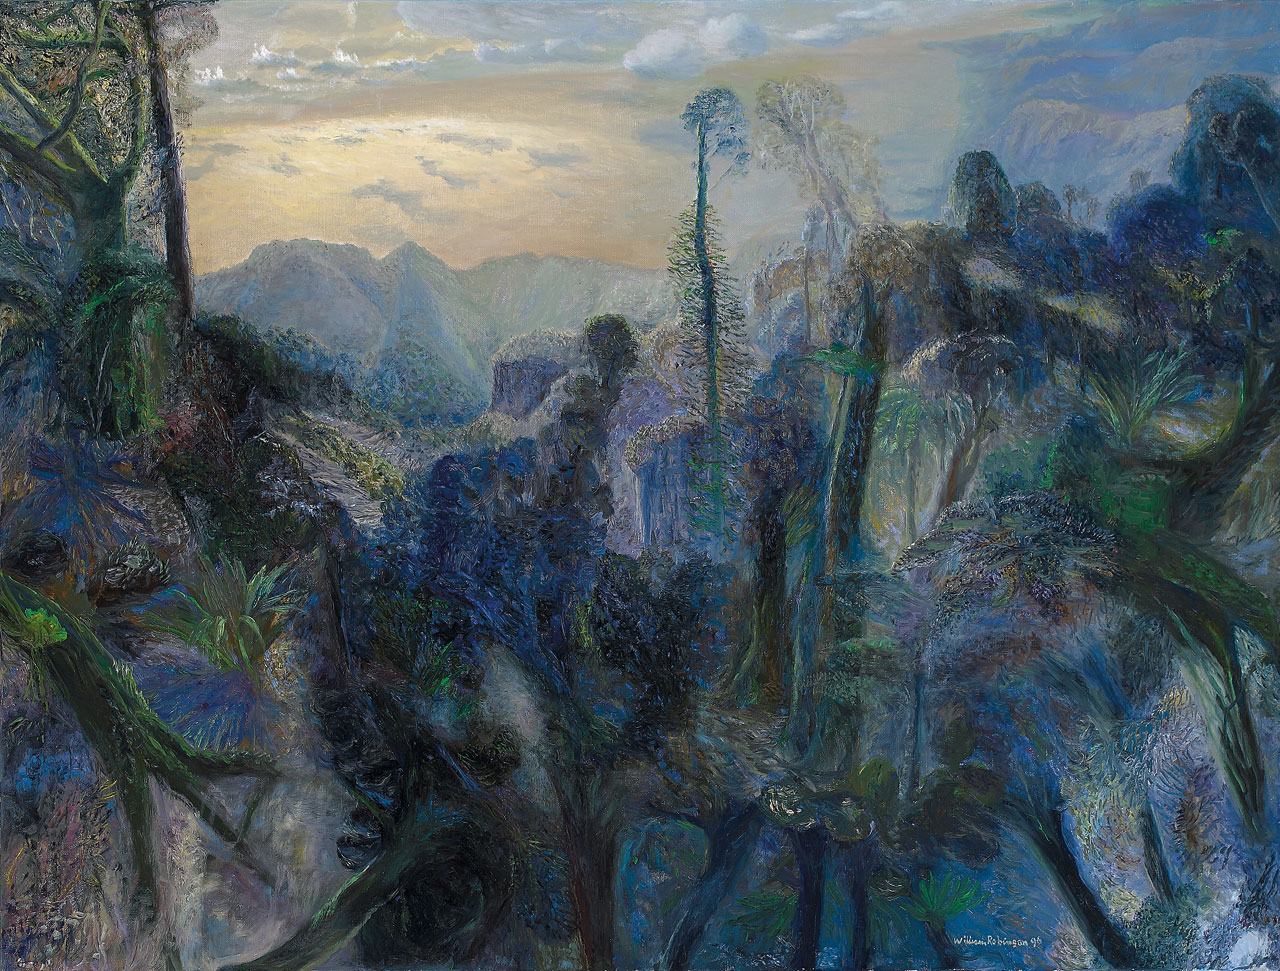 William Robinson 'The sea with morning sun from Springbrook' (study) 1996